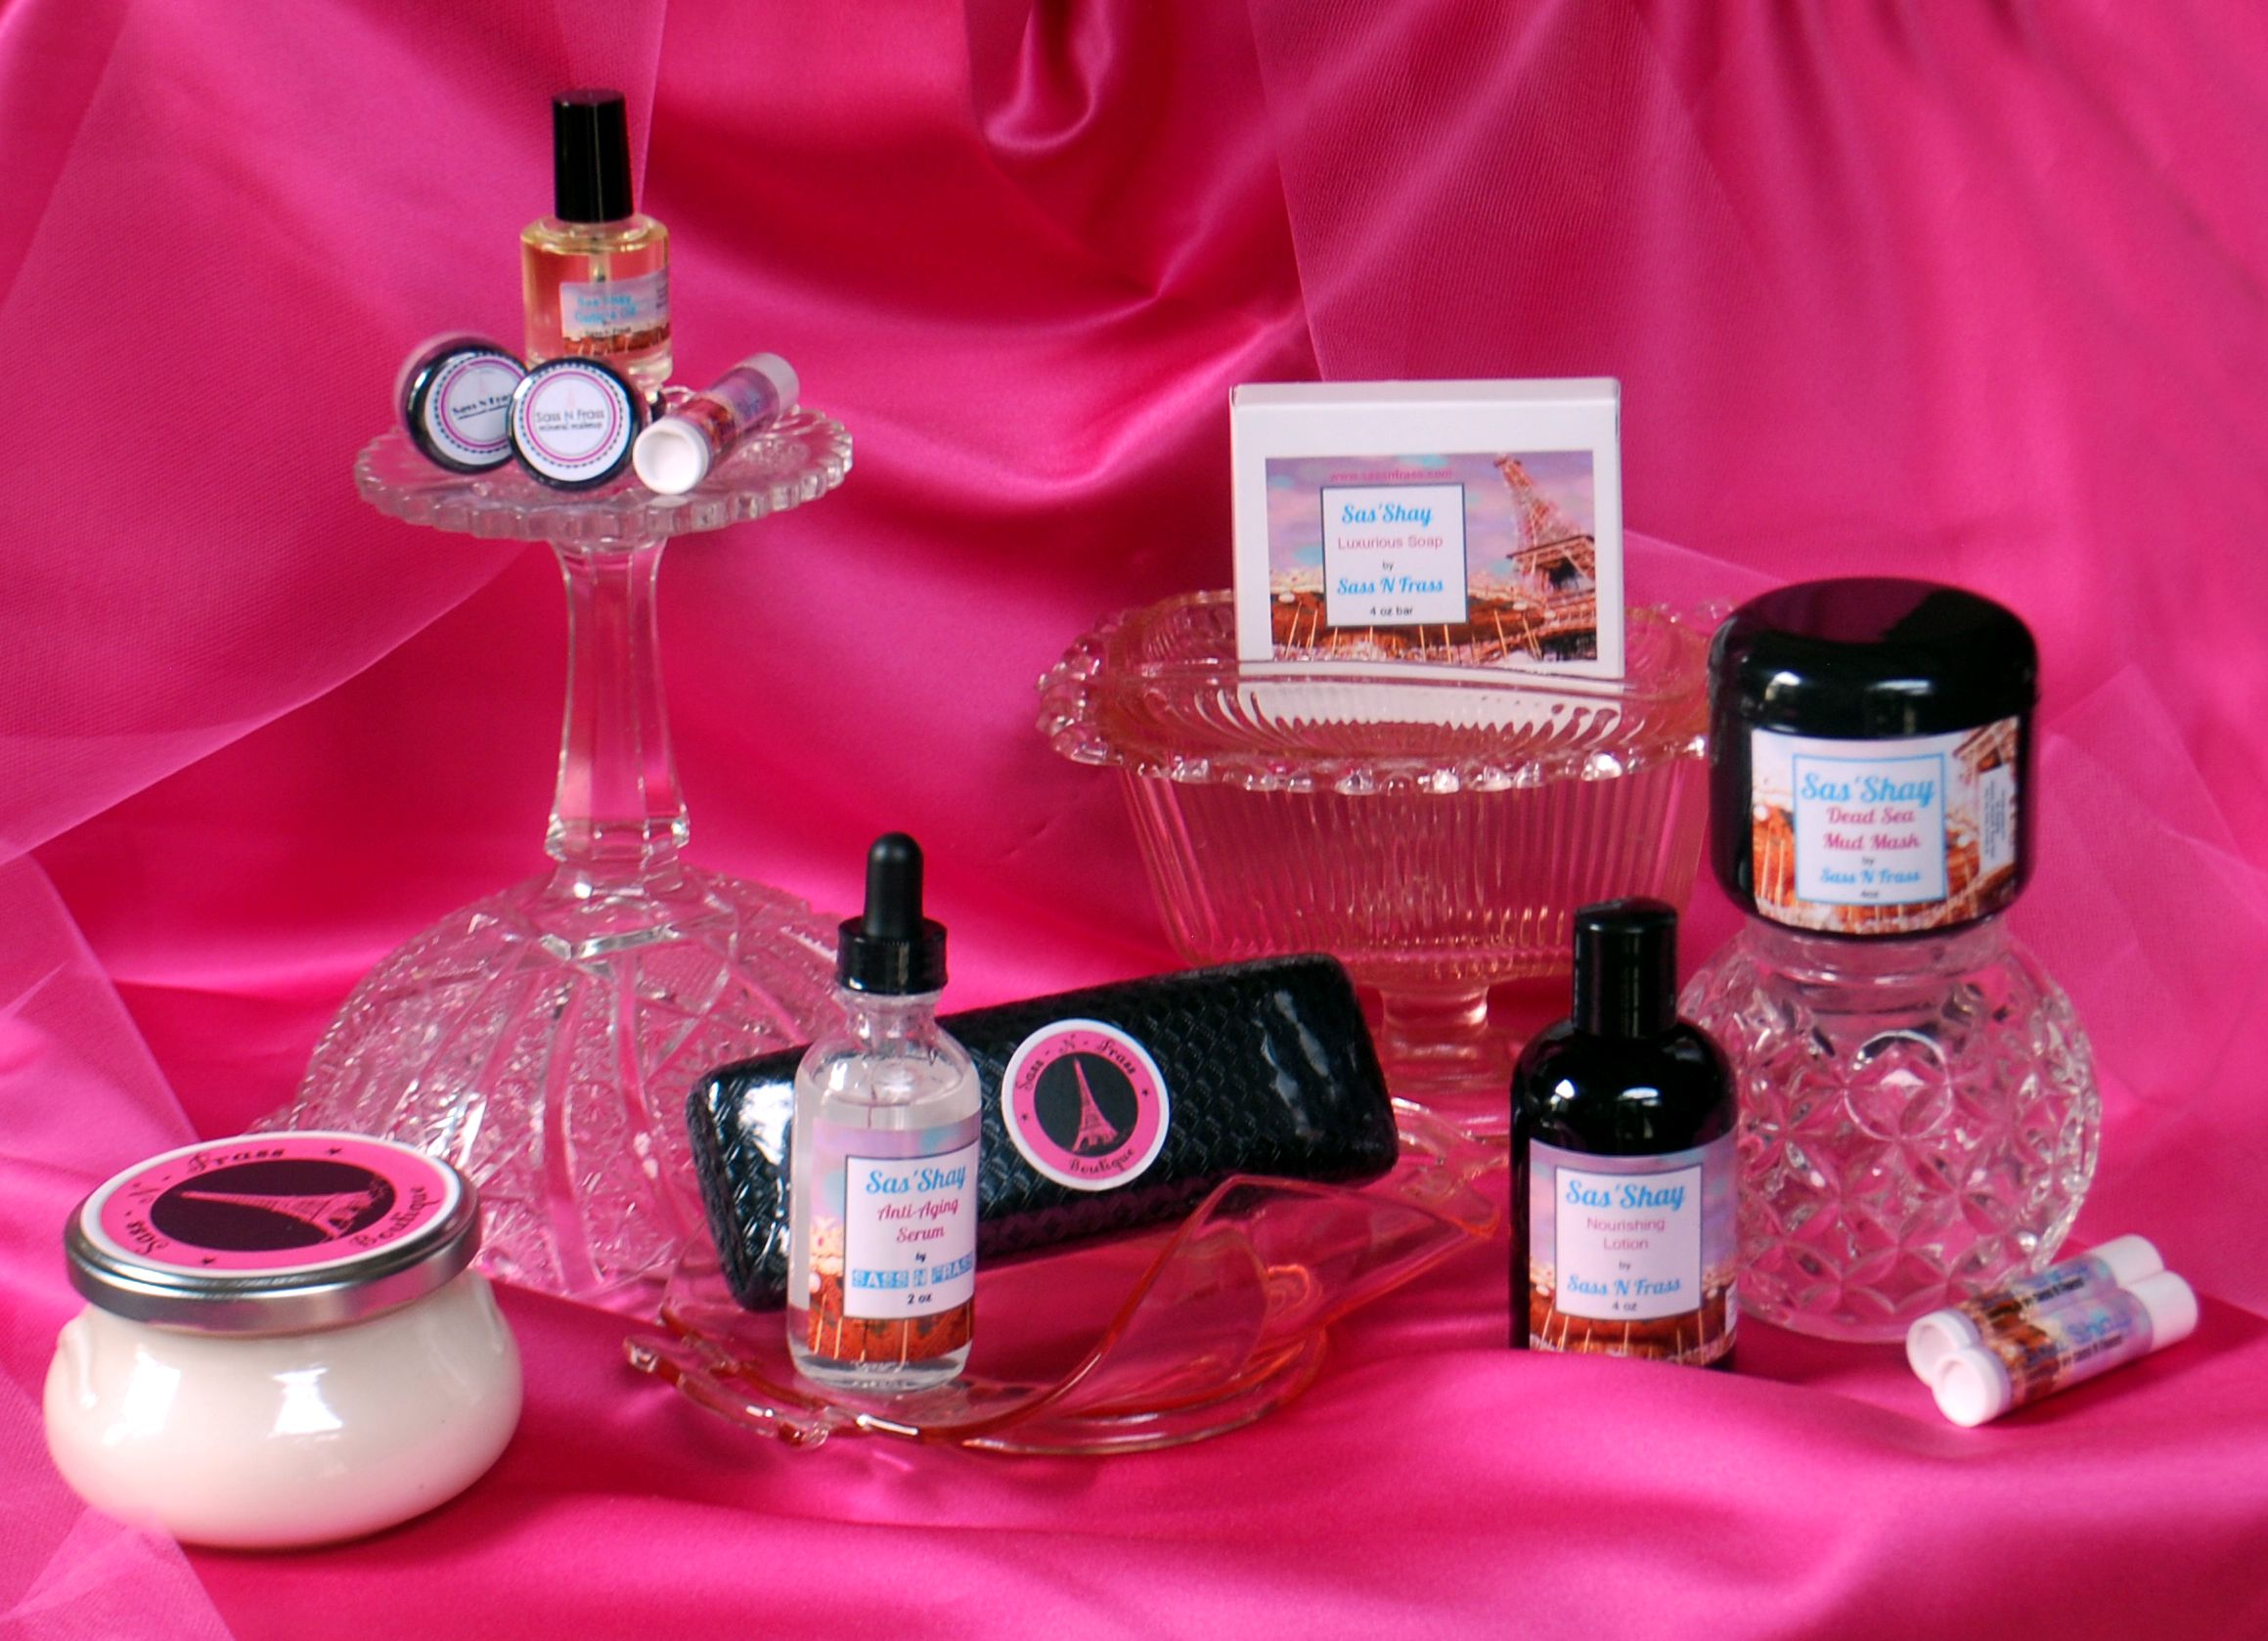 Sas'Shay Essential oil blends, Shay, The balm